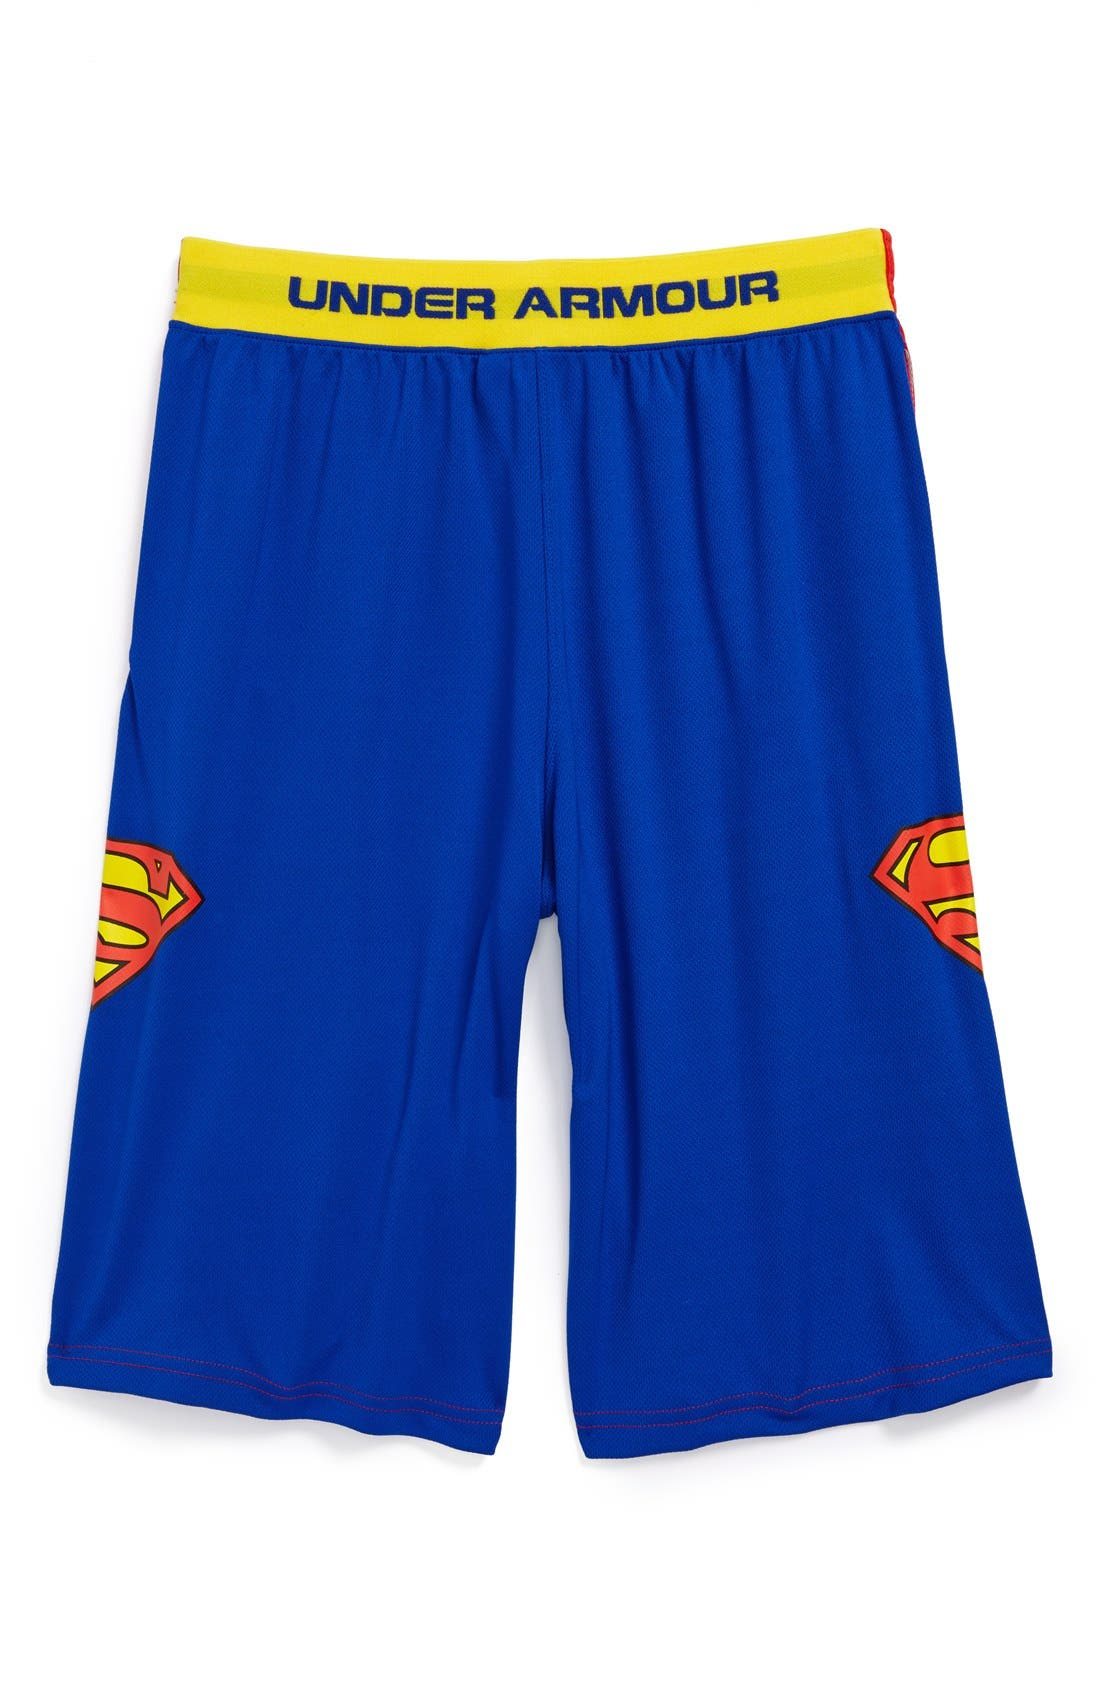 Alternate Image 1 Selected - Under Armour 'Alter Ego - Superman' Shorts (Little Boys & Big Boys)